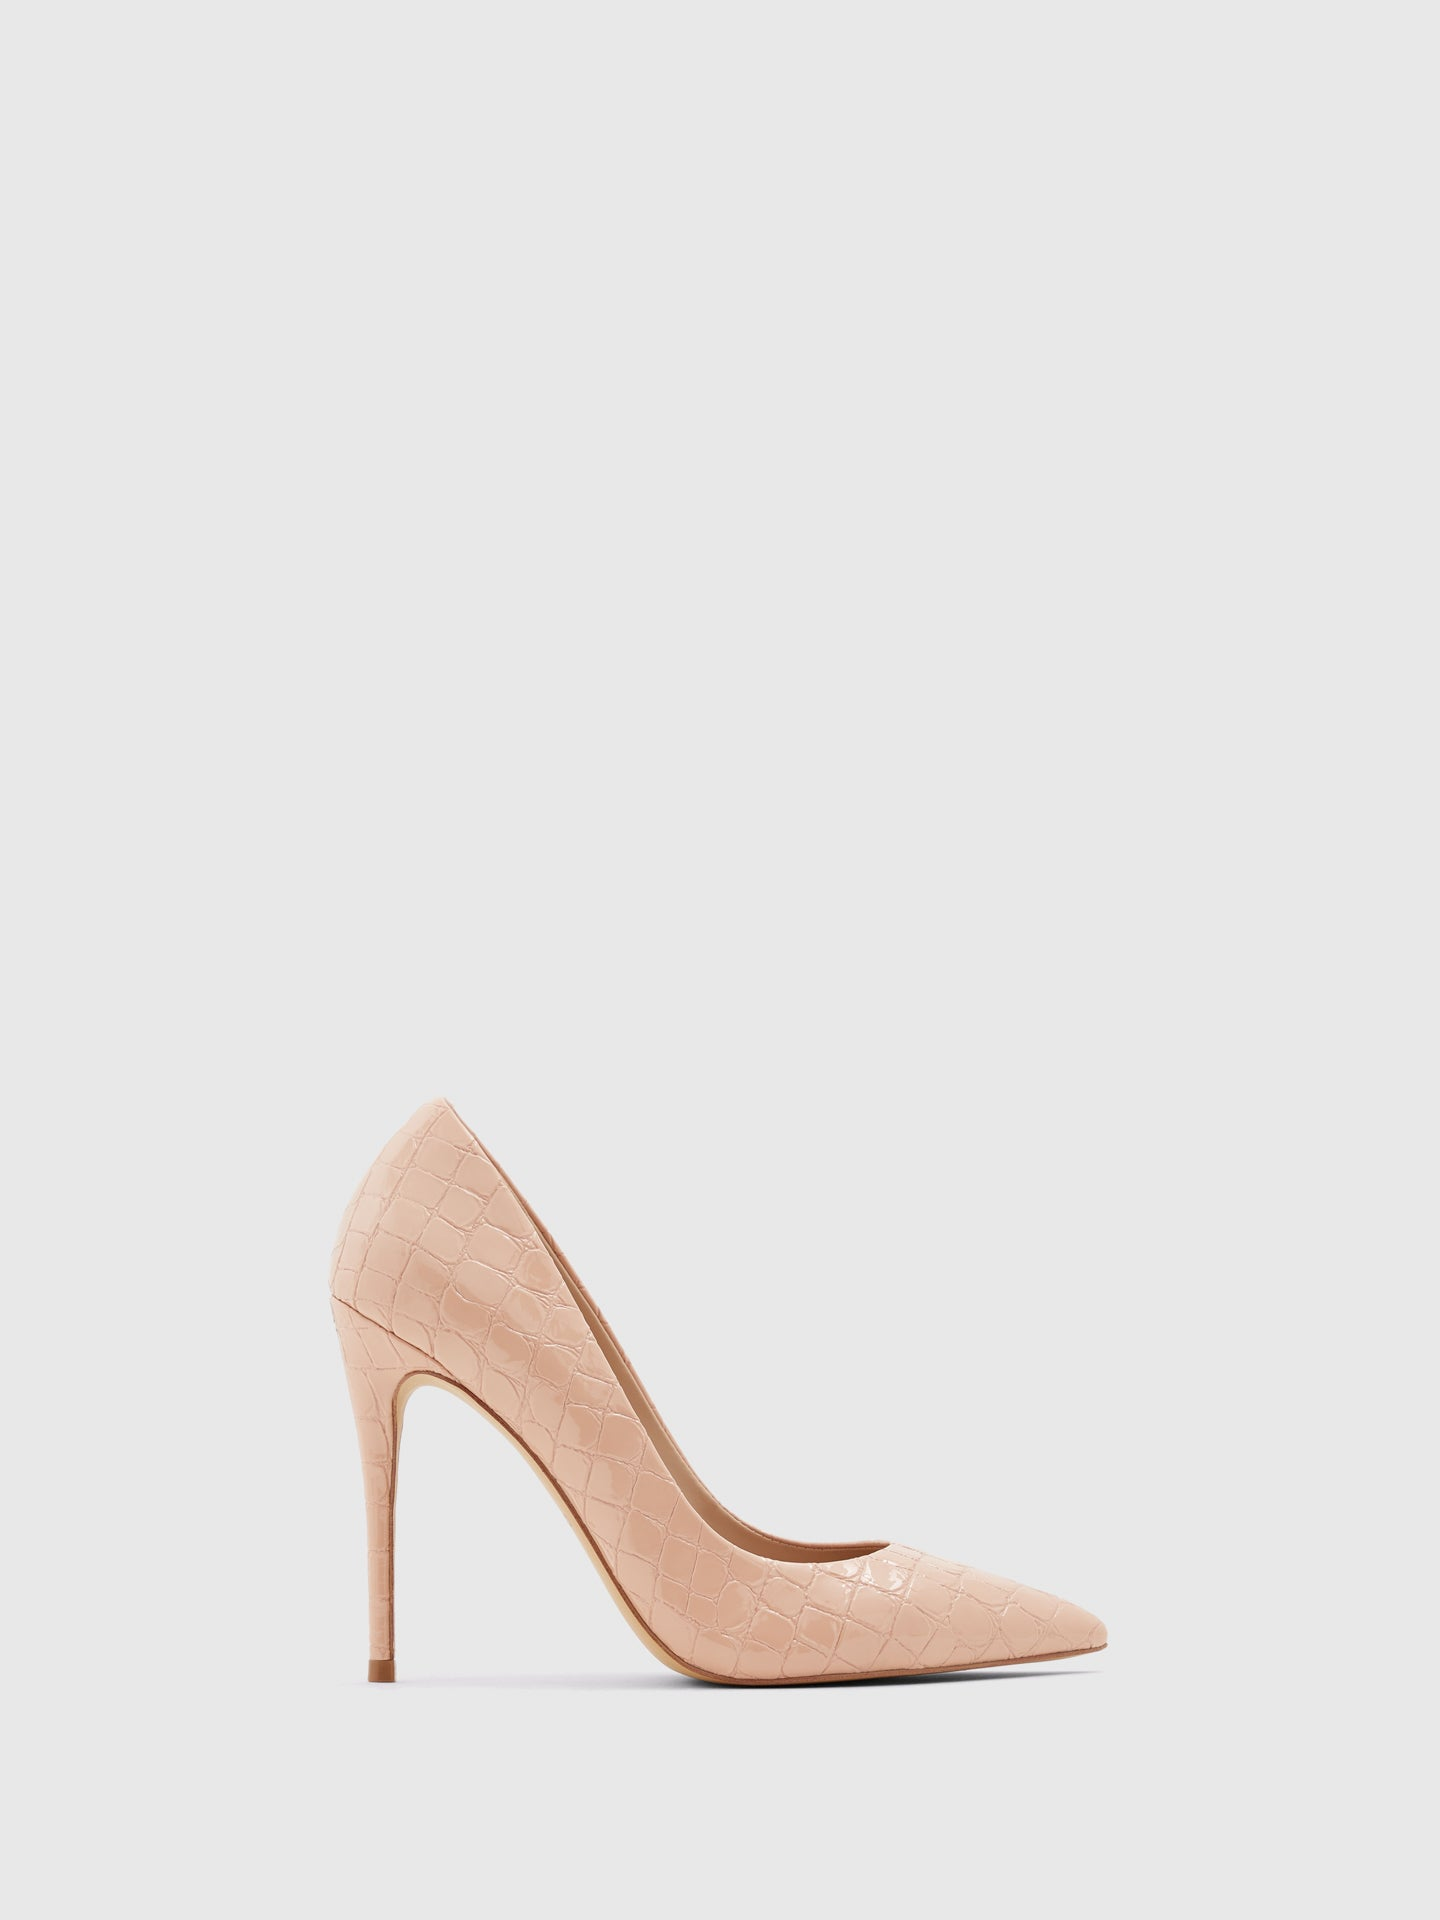 Aldo Pink Stiletto Shoes